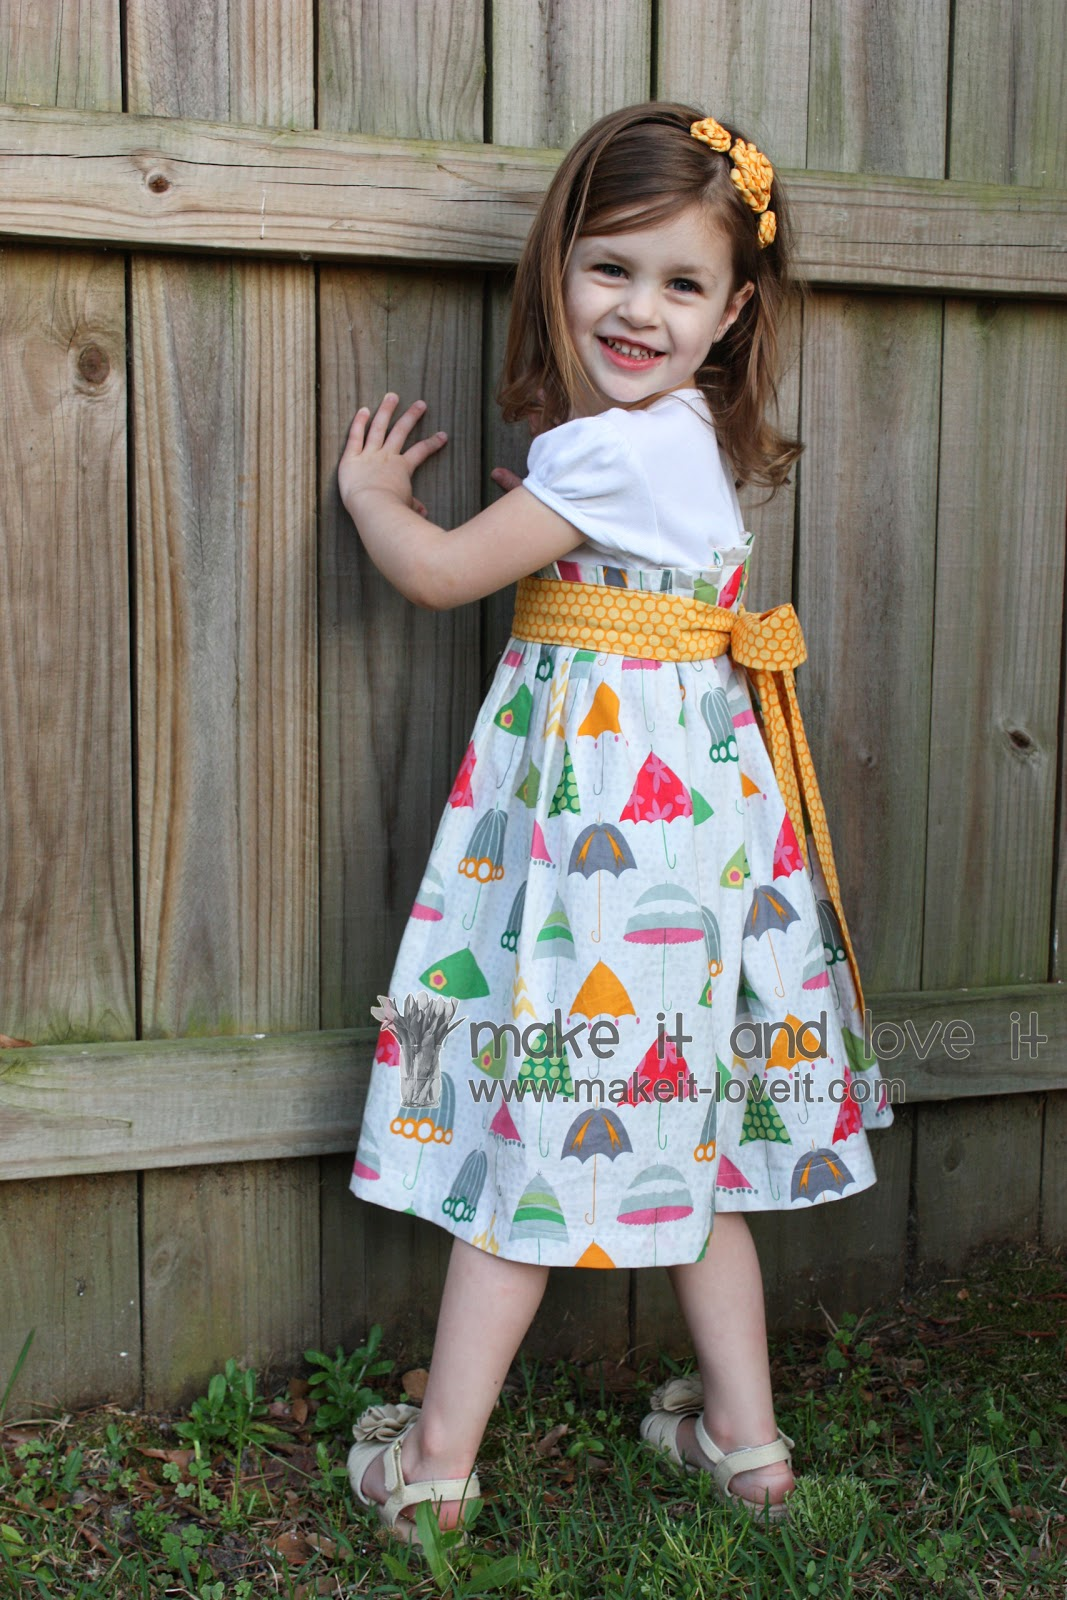 Re-Purposing: T-Shirt into Dress  Make It and Love It